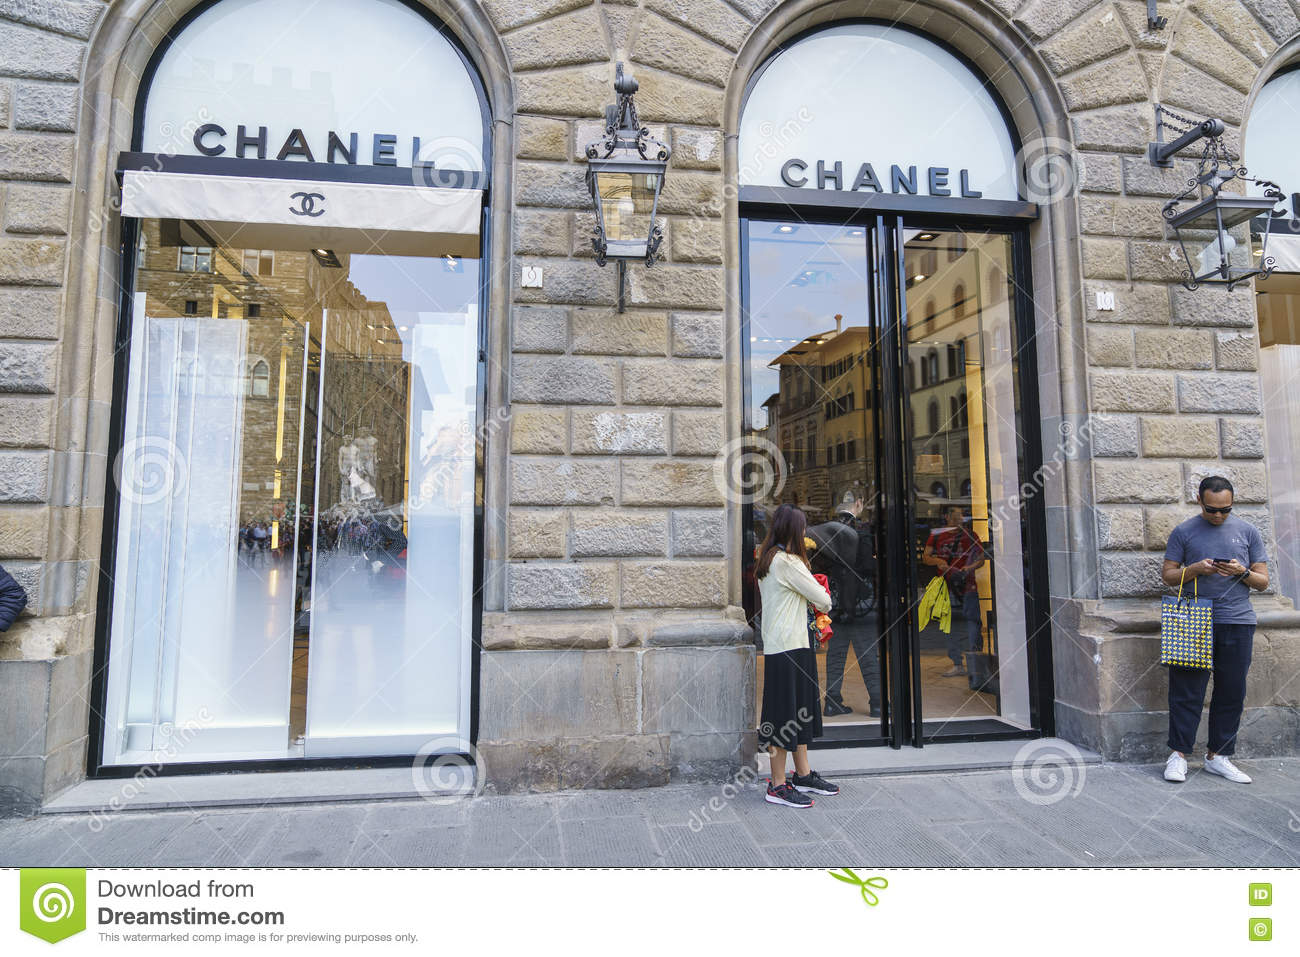 Coco chanel fashion store in florence italy editorial for Dream store firenze